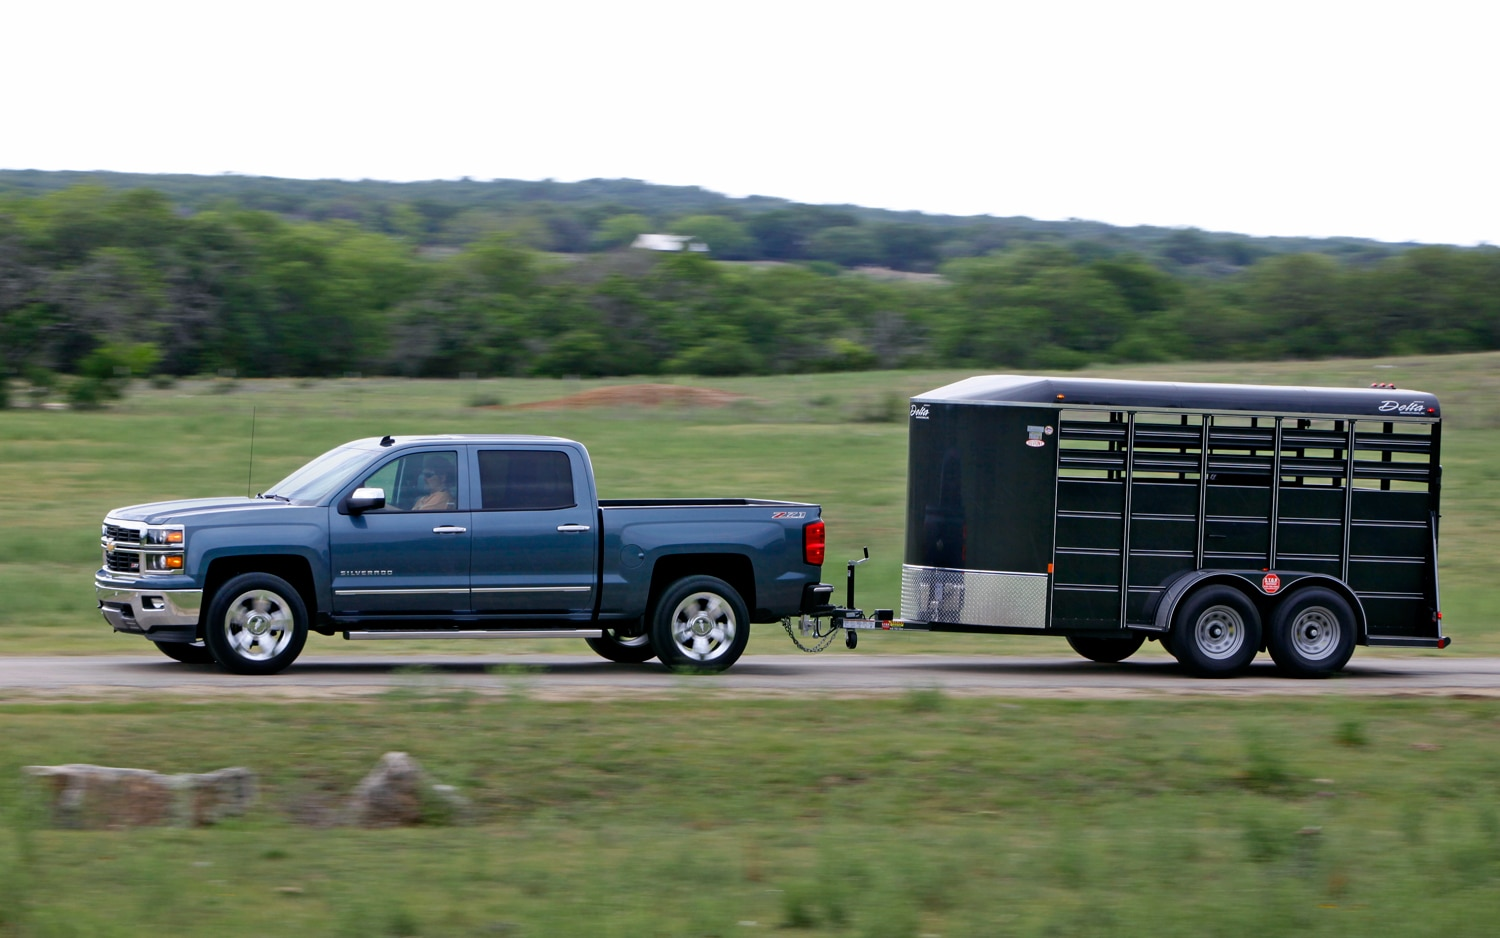 hight resolution of 2014 chevrolet silverado 1500 side view towing